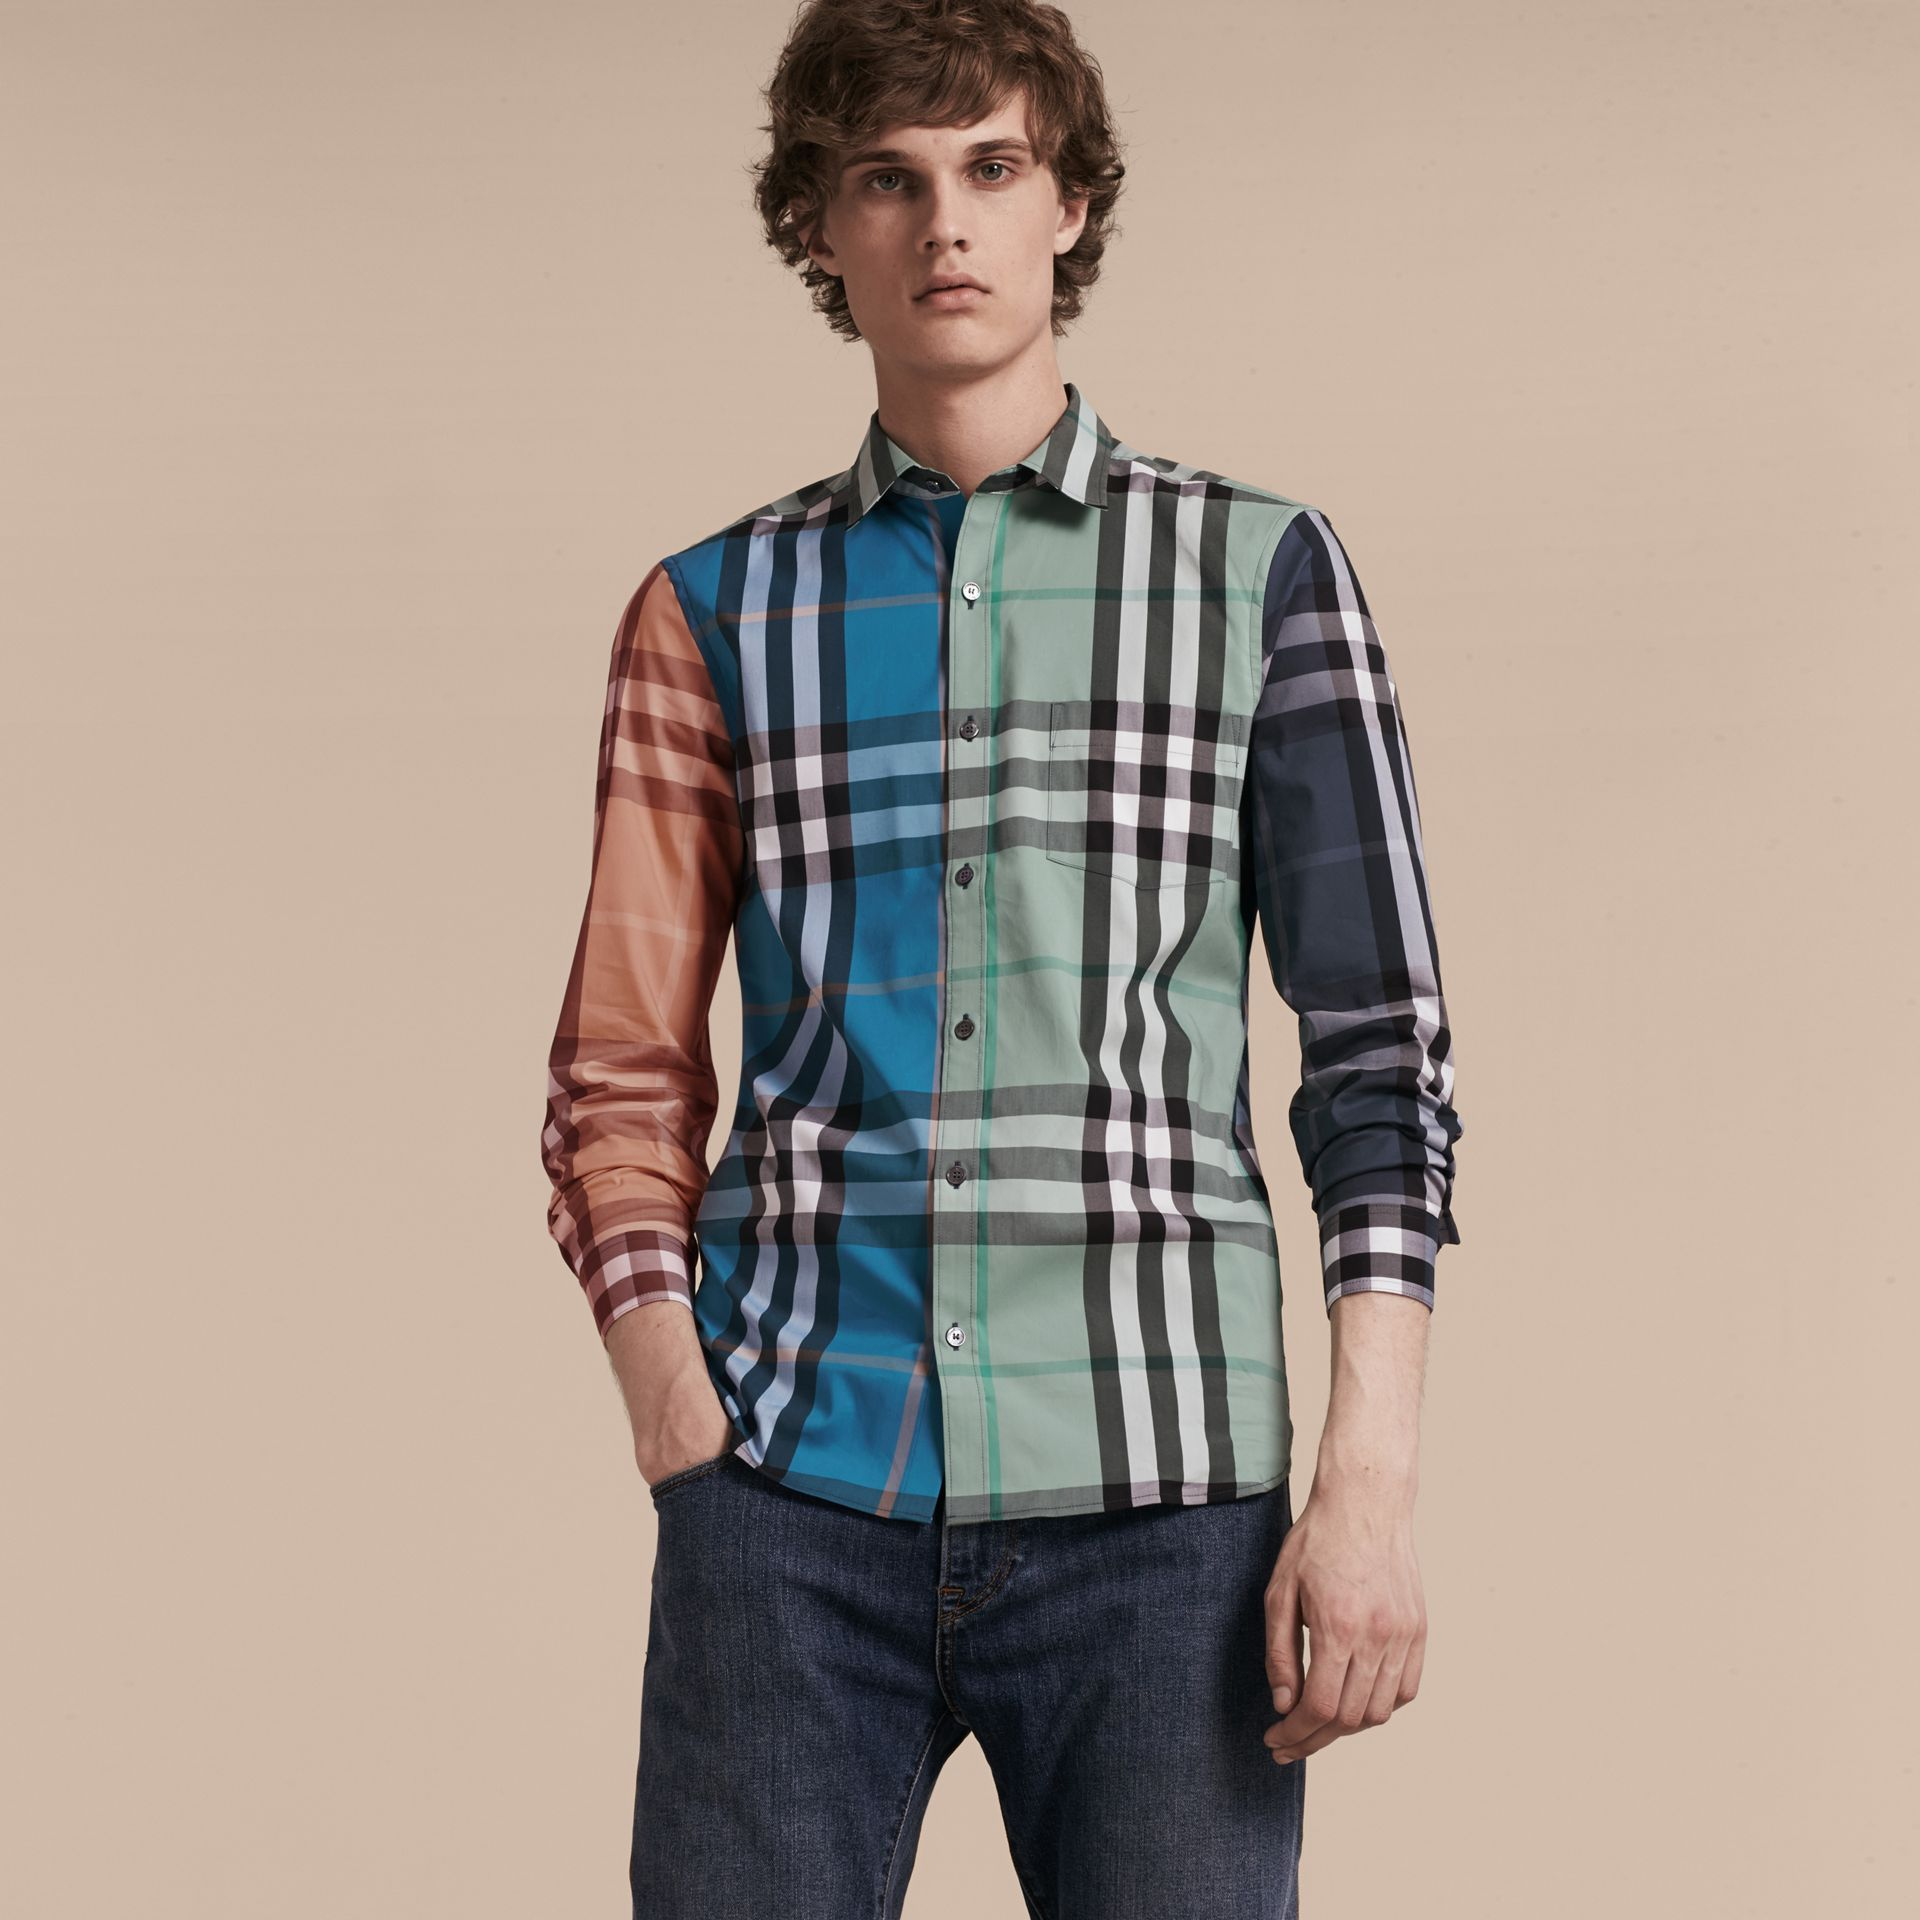 Cerulean blue Colour Block Check Cotton Blend Shirt Cerulean Blue - gallery image 6